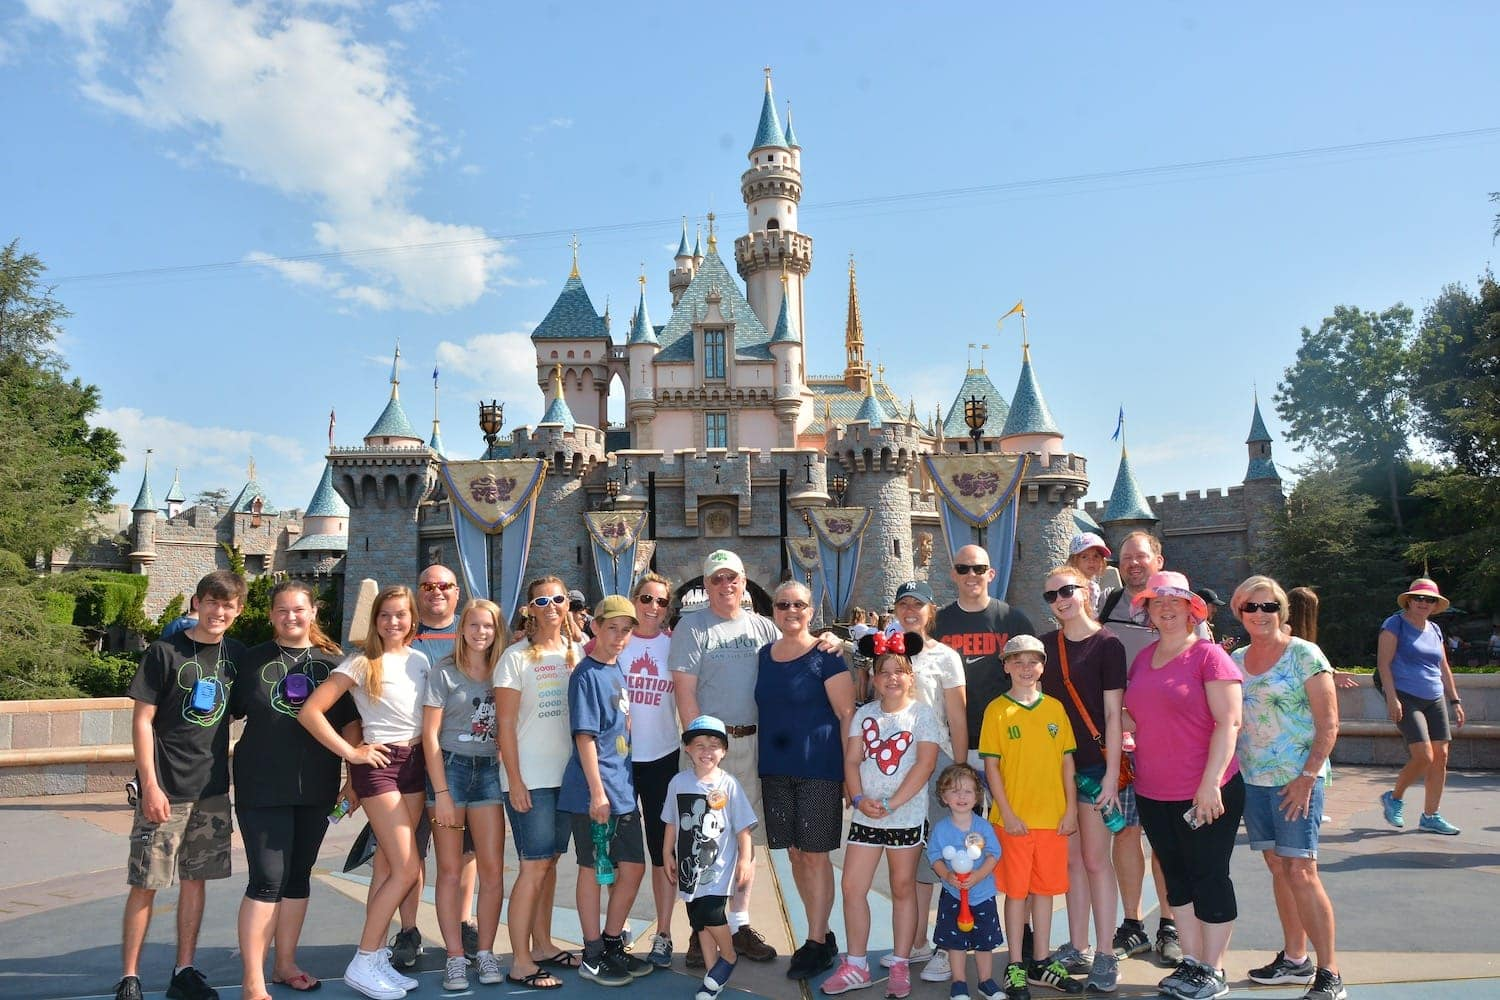 Group of people posing in front of Disneyland Castle